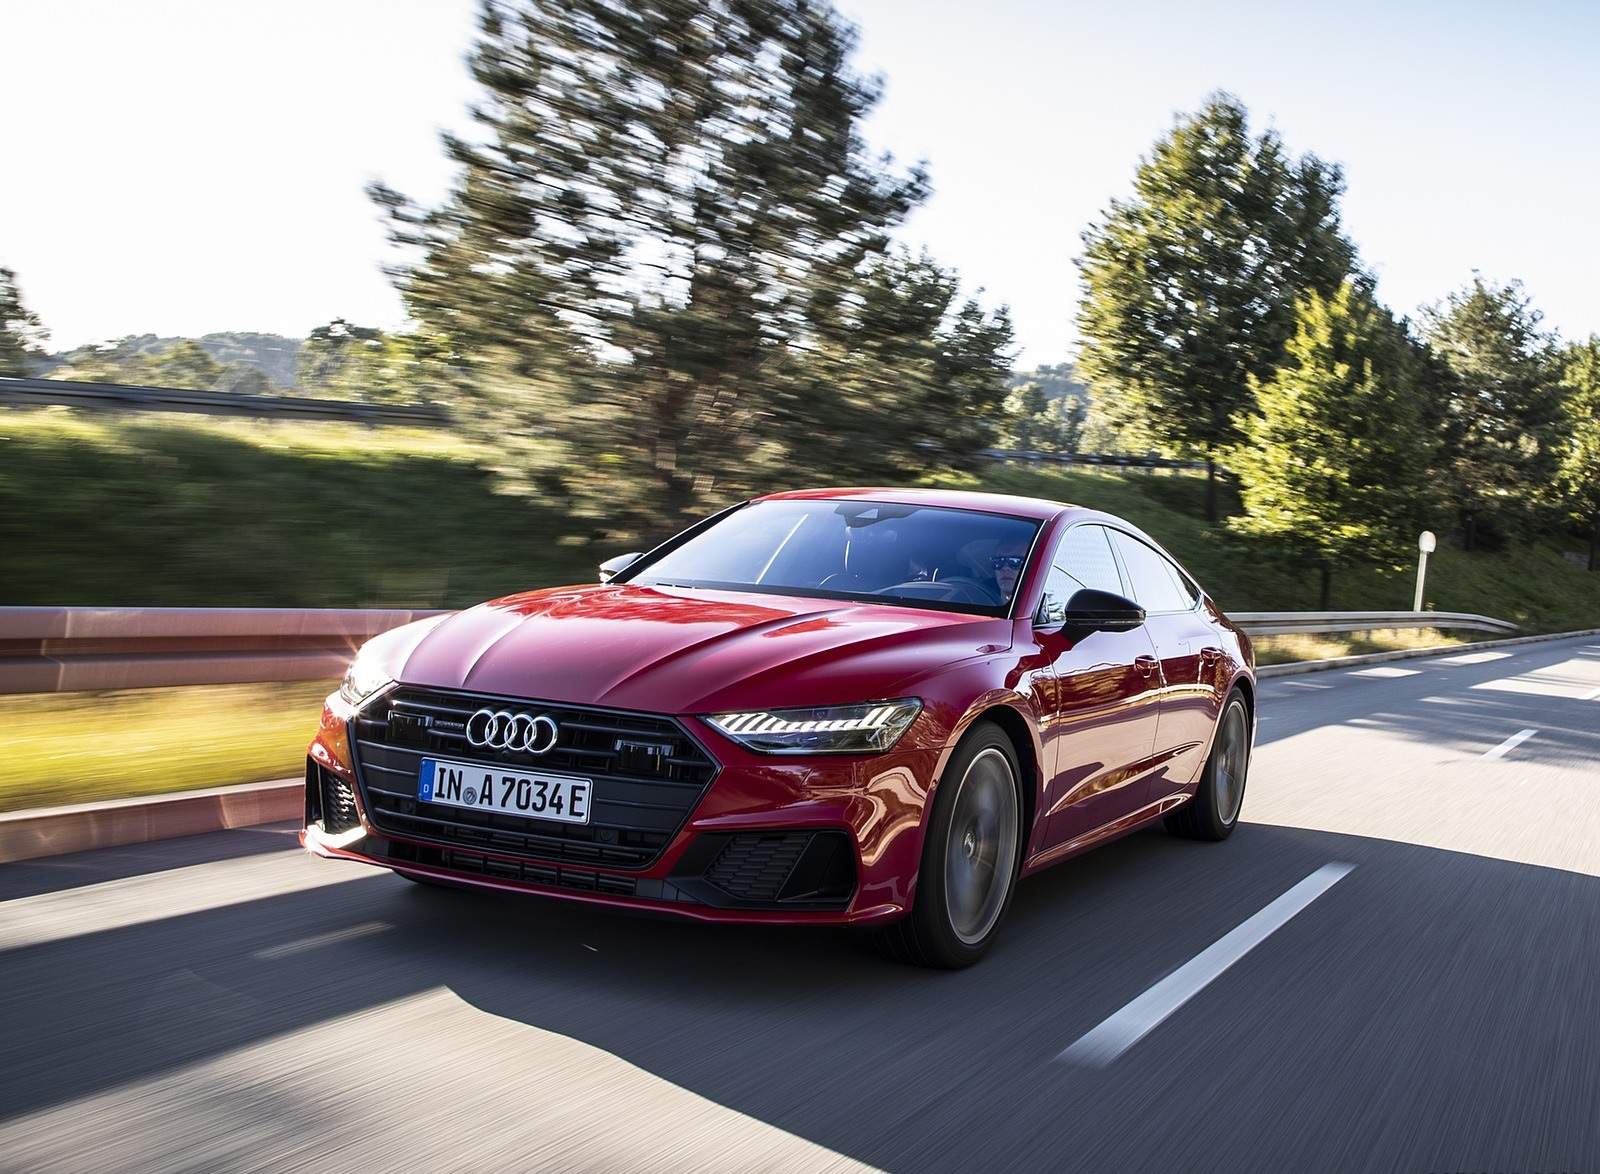 2020 Audi A7 Sportback 55 TFSI e quattro Plug-In Hybrid (Color: Tango Red) Front Three-Quarter Wallpapers (15)